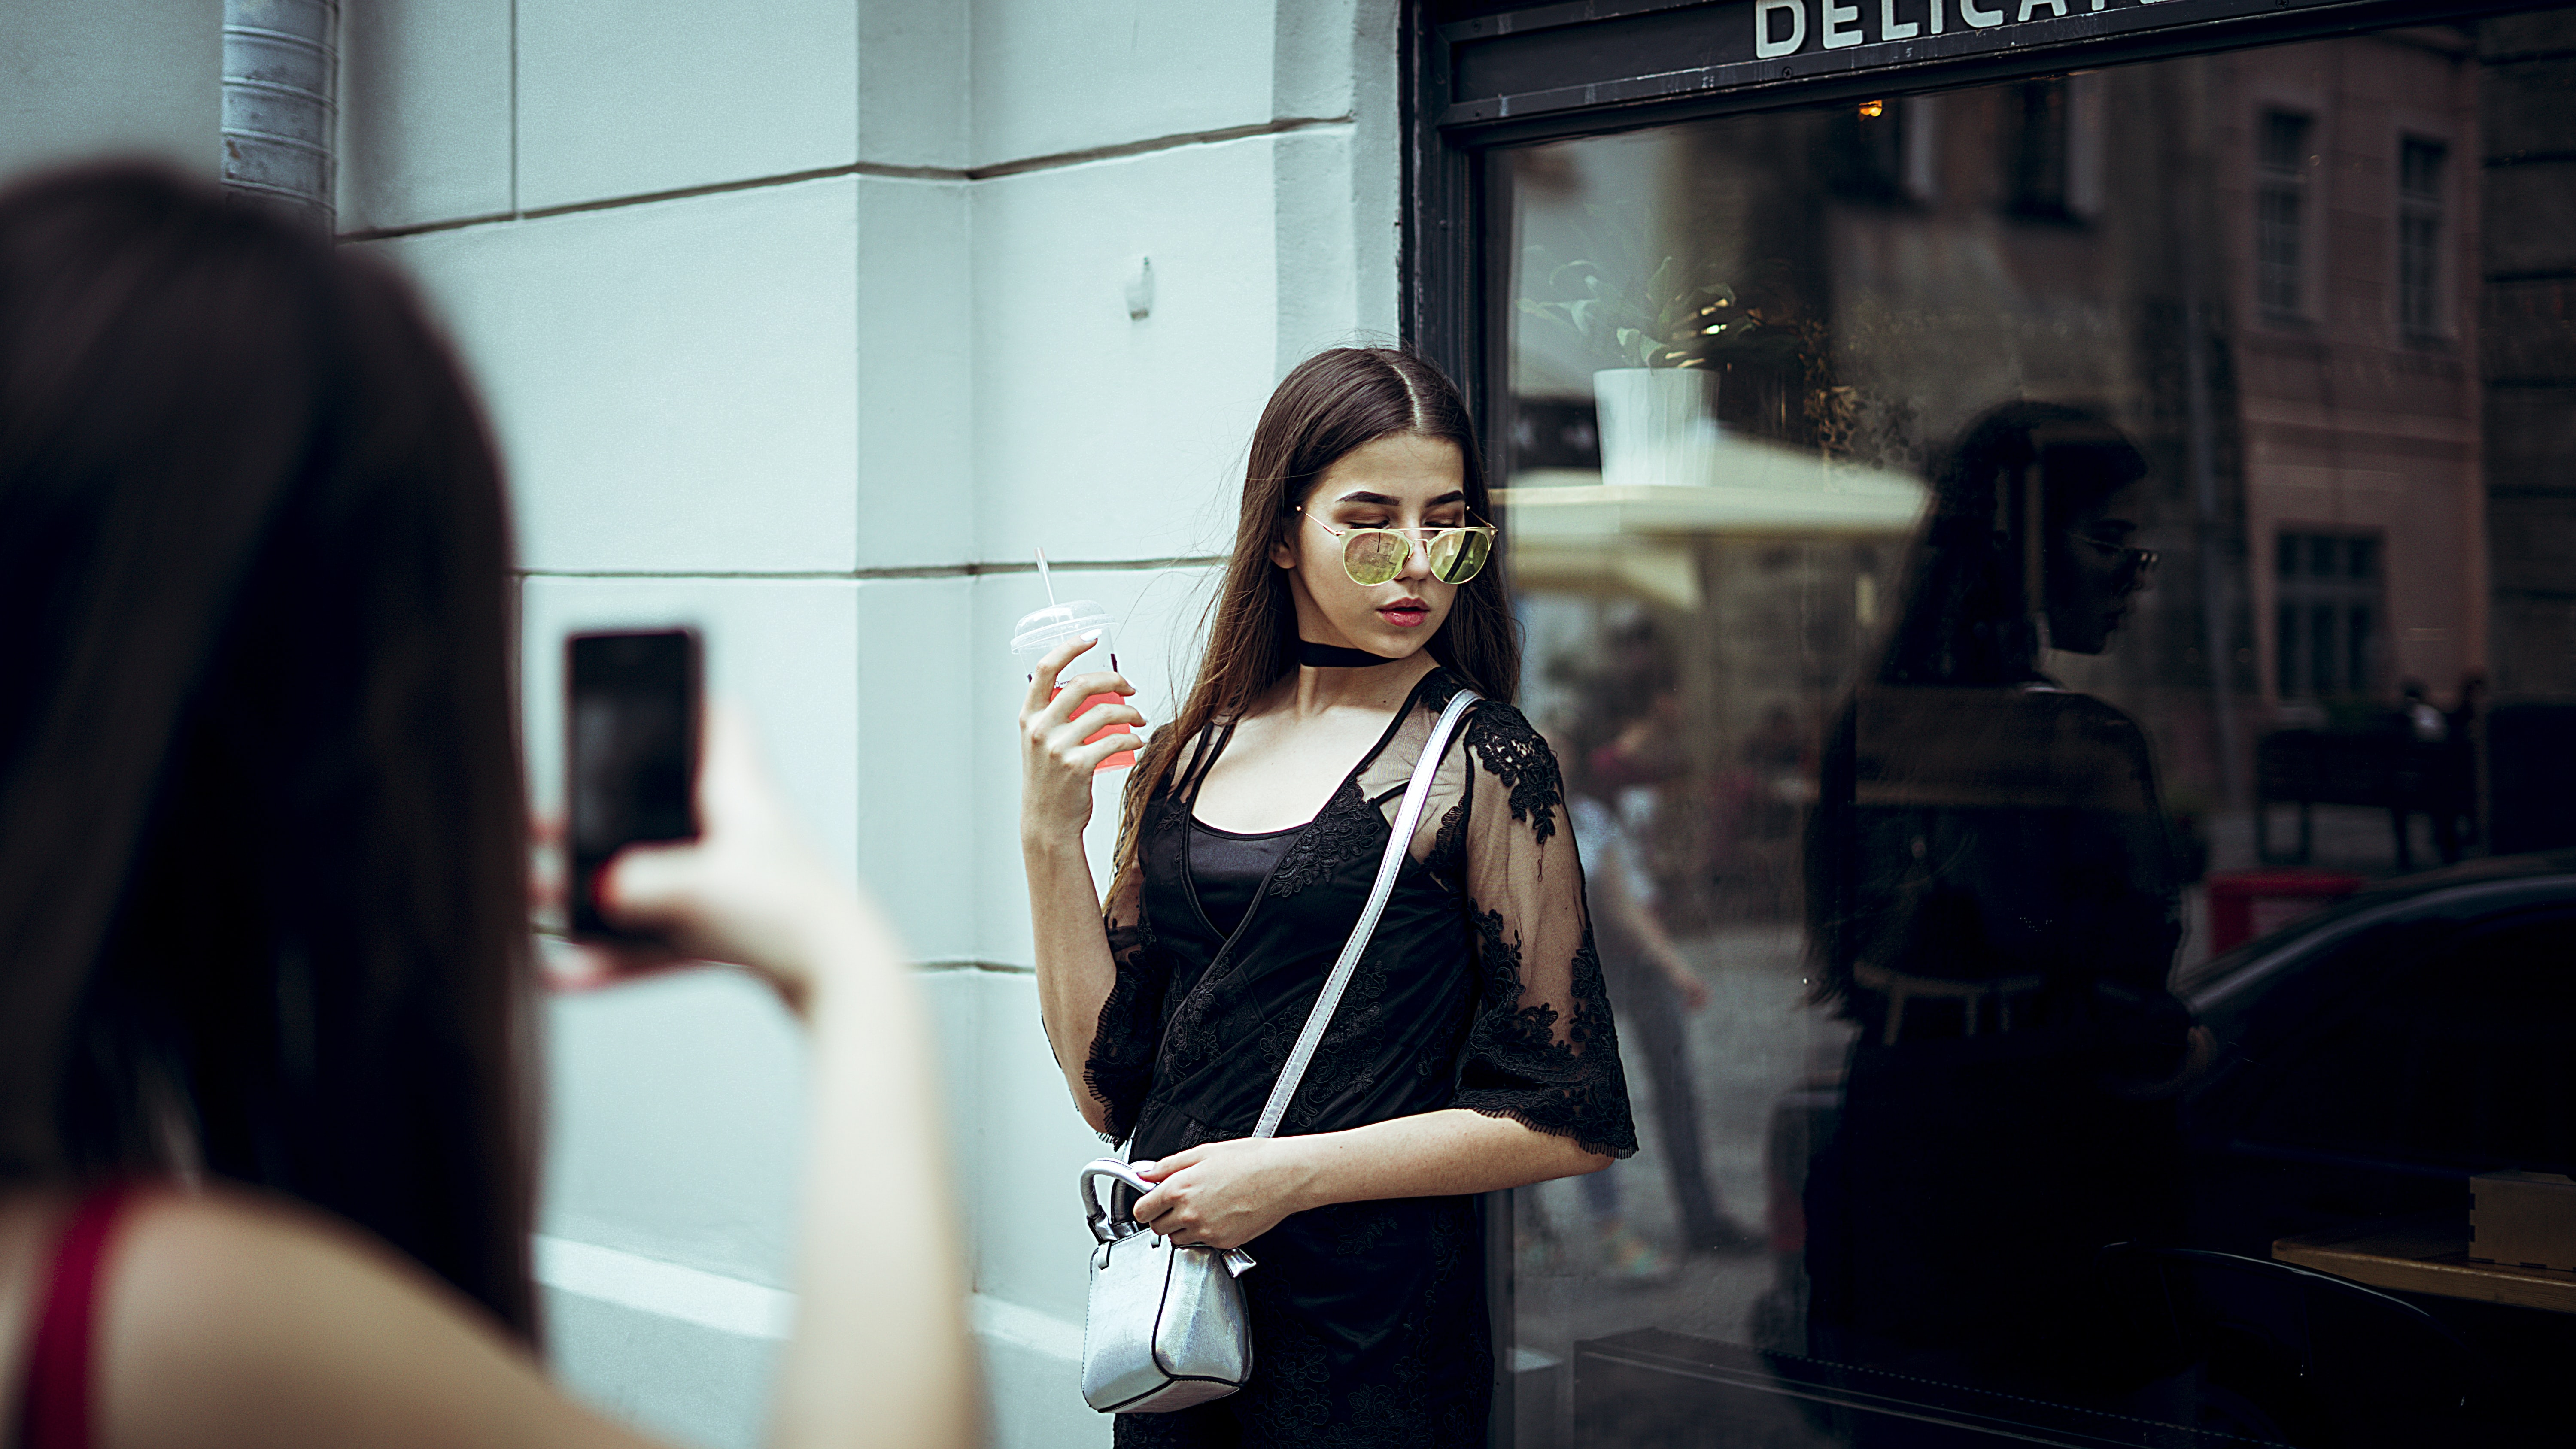 woman taking photo of woman carrying sling bag